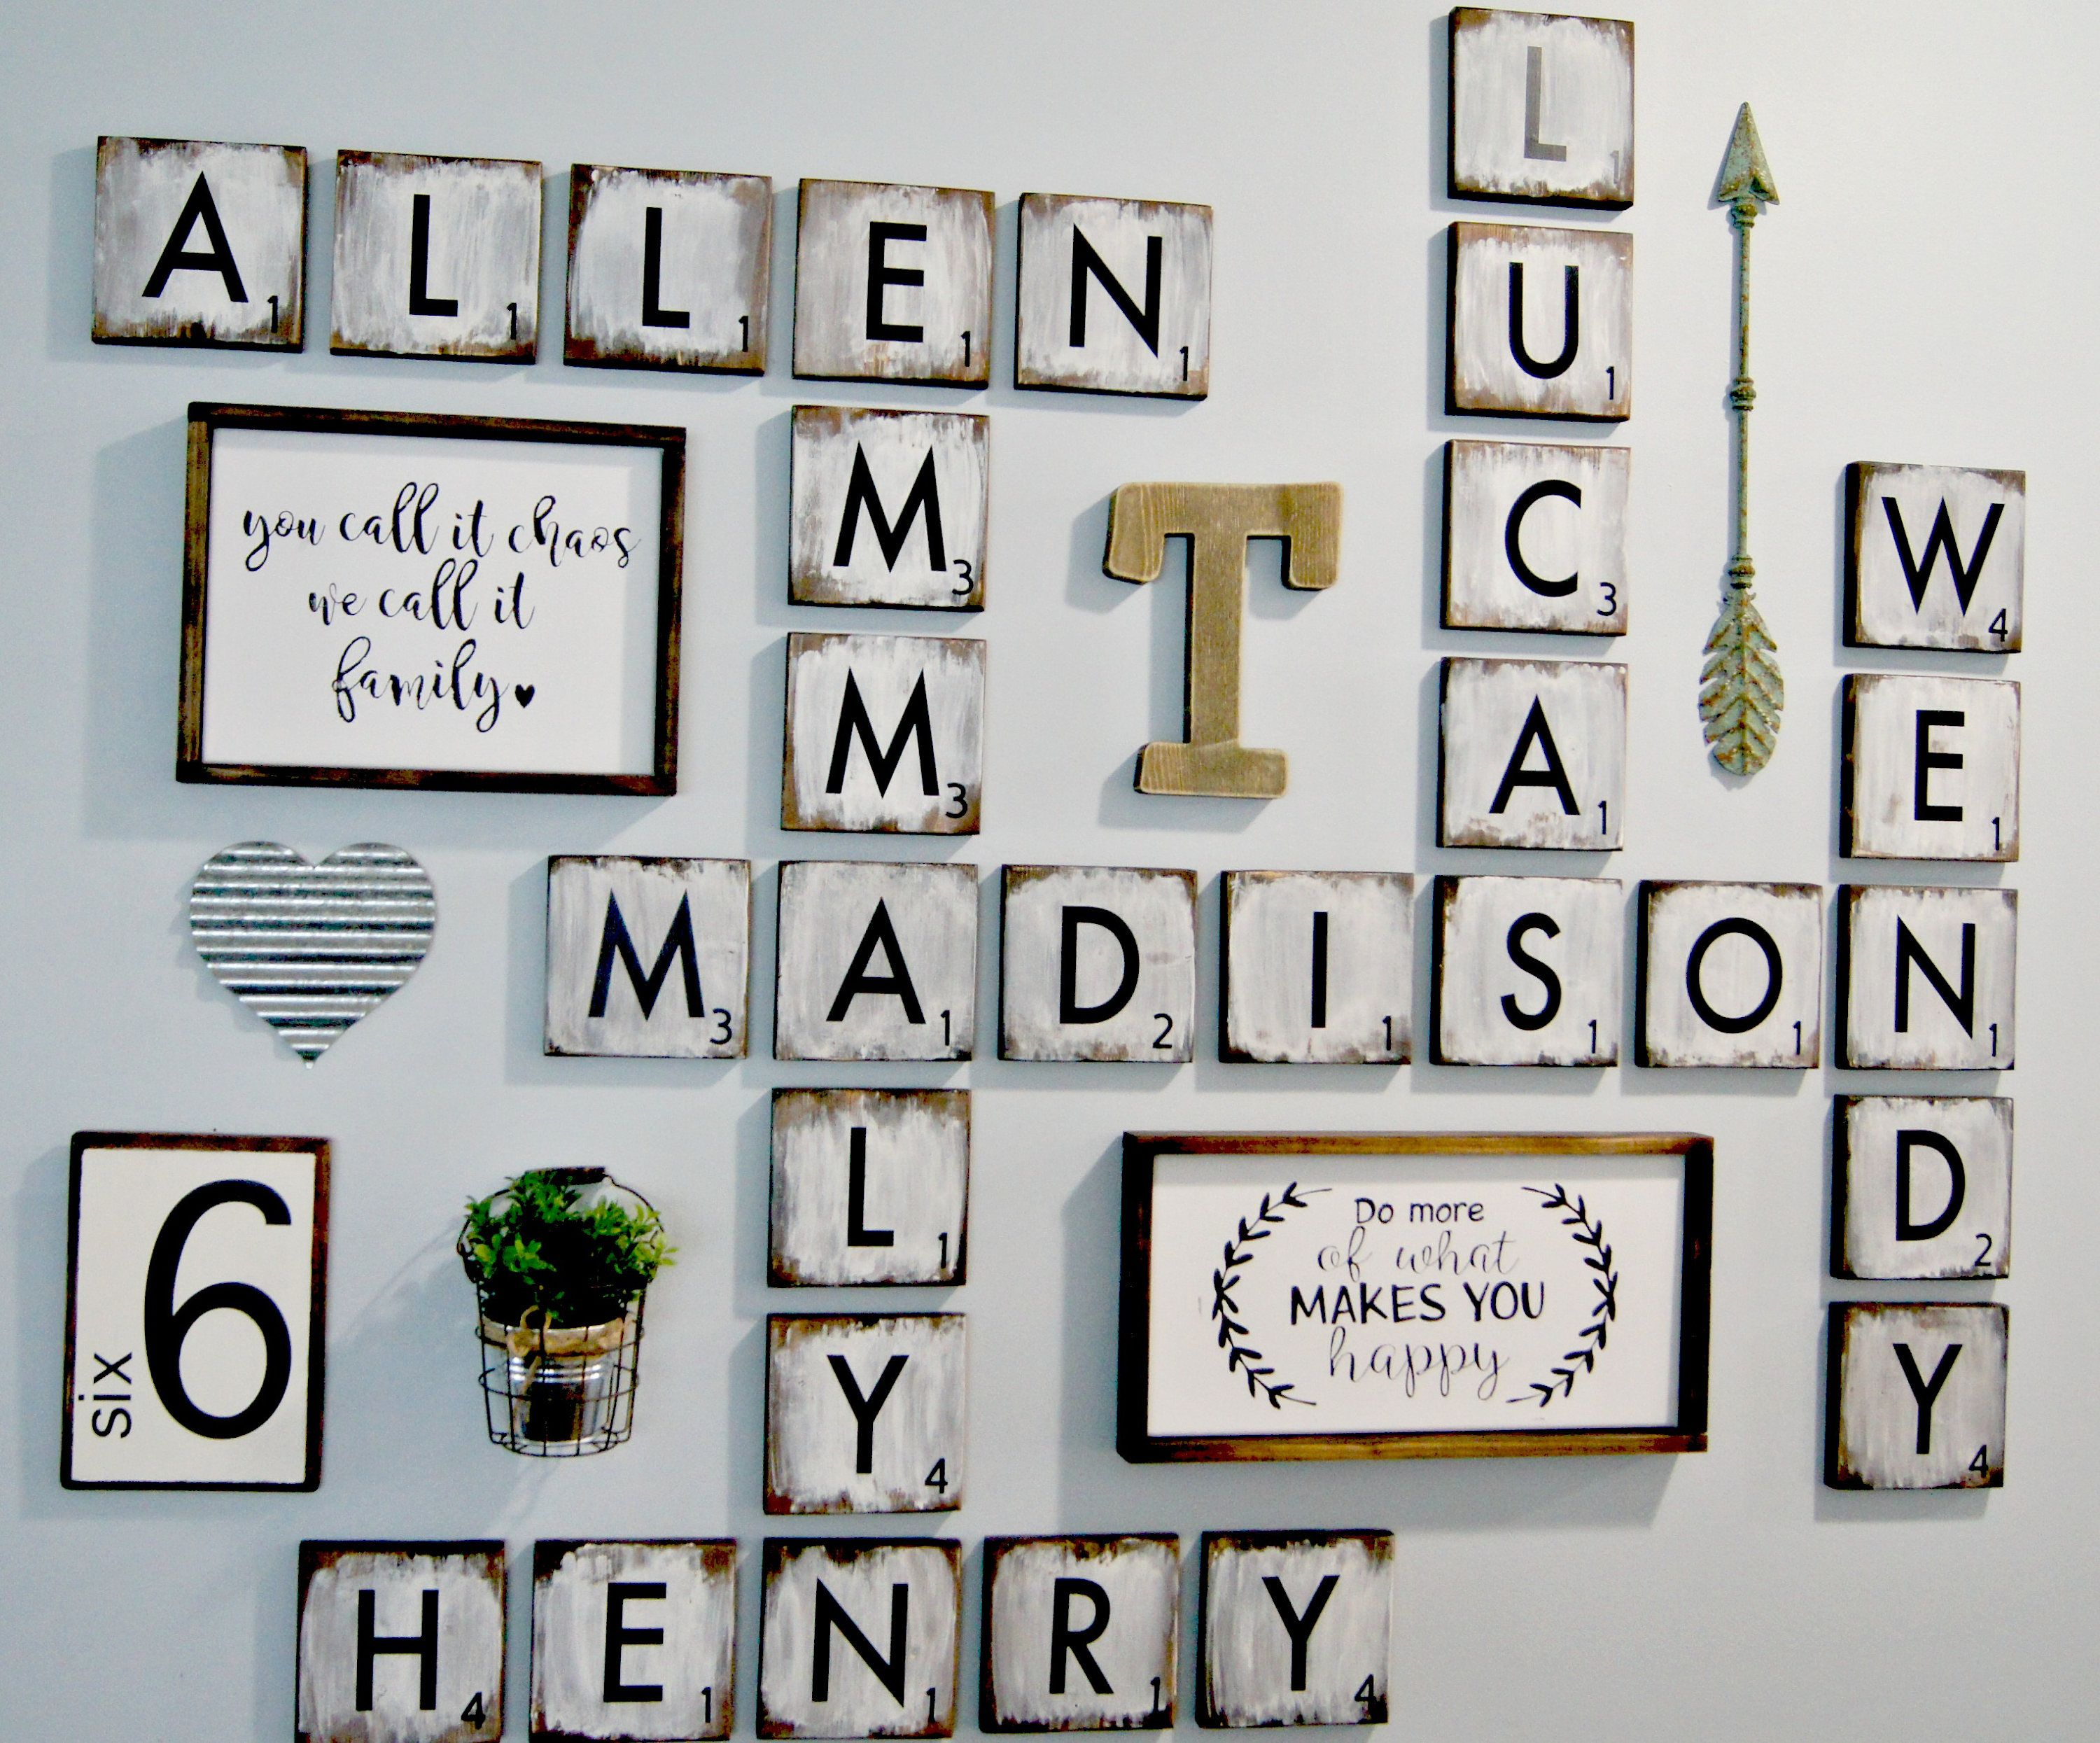 decor wall tiles ace art scrabble most letter innovation for with mirrored letters words home